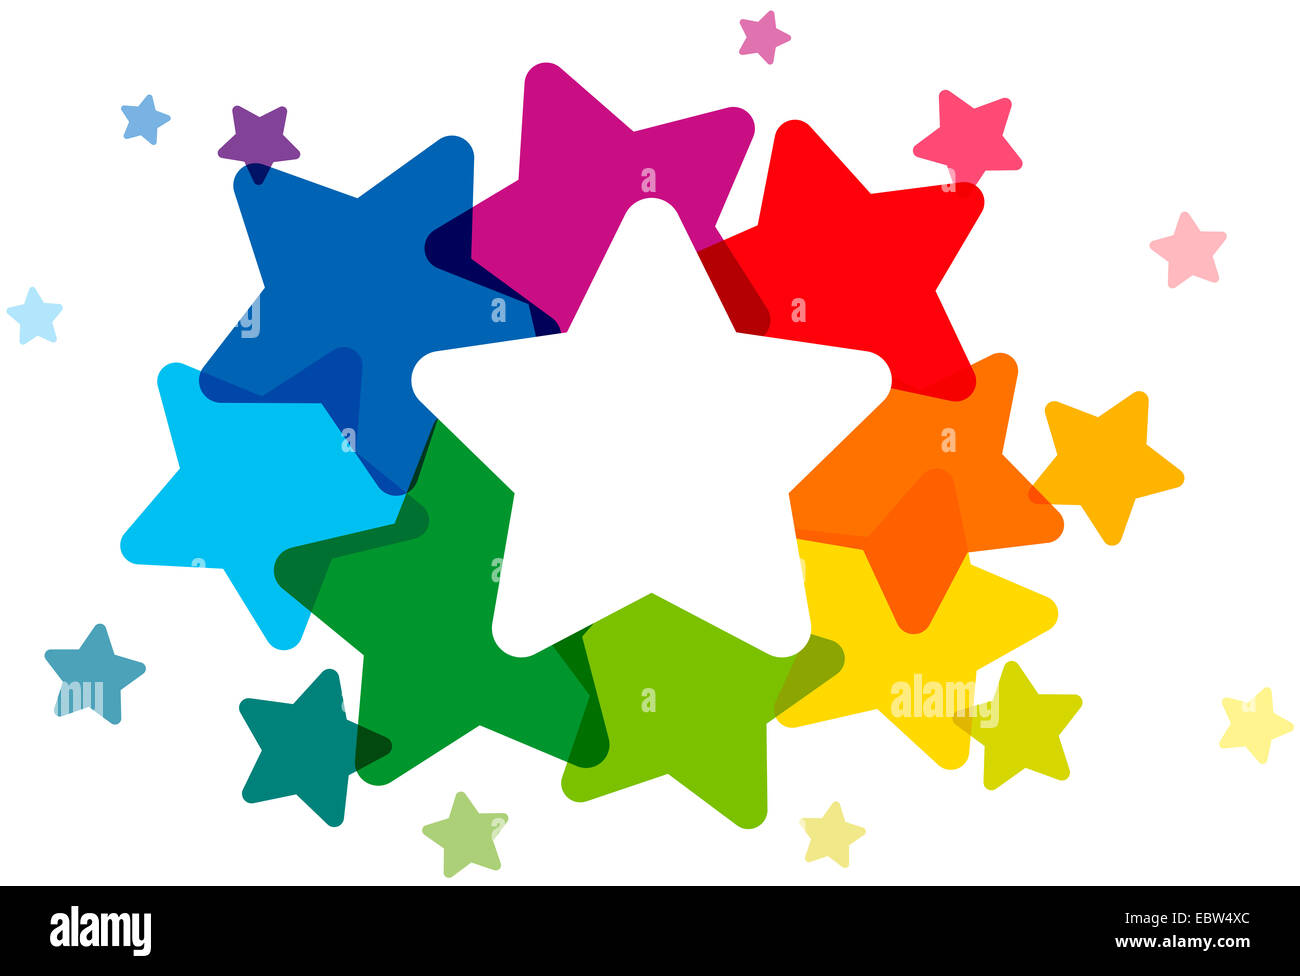 Rainbow Colored Stars Forming A Colorful Cloud And Frame To Write